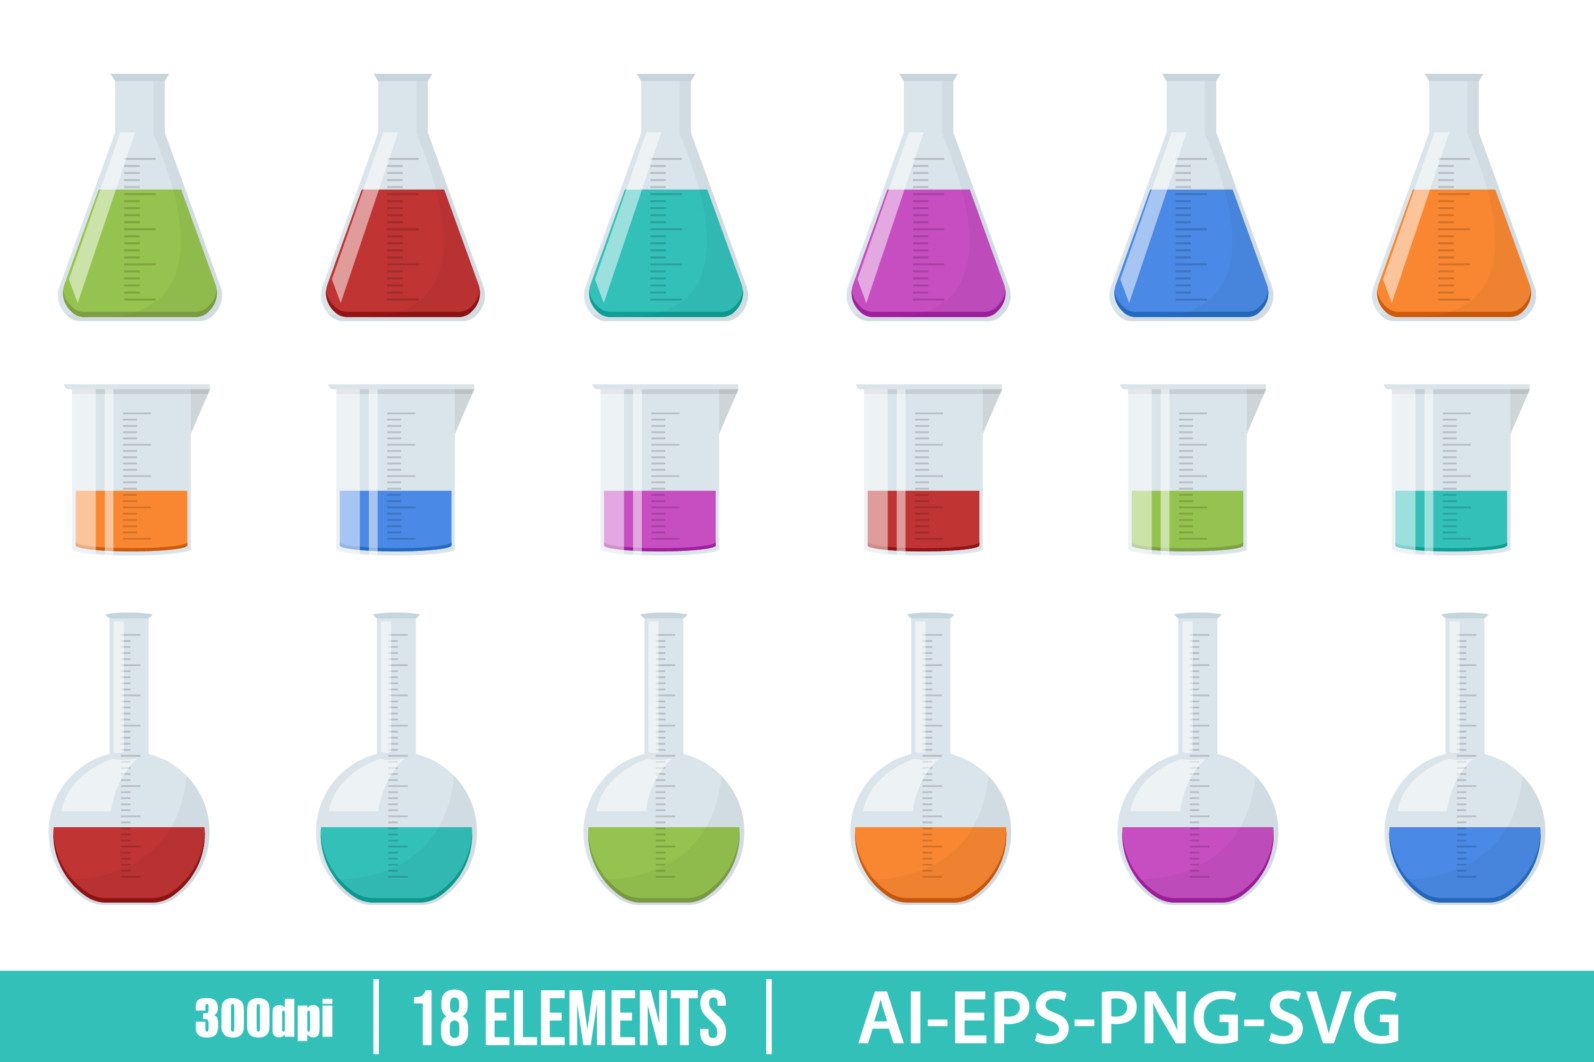 Laboratory chemical flask clipart vector design illustration. Vector Clipart Print - LABORATORY FLASKS scaled -